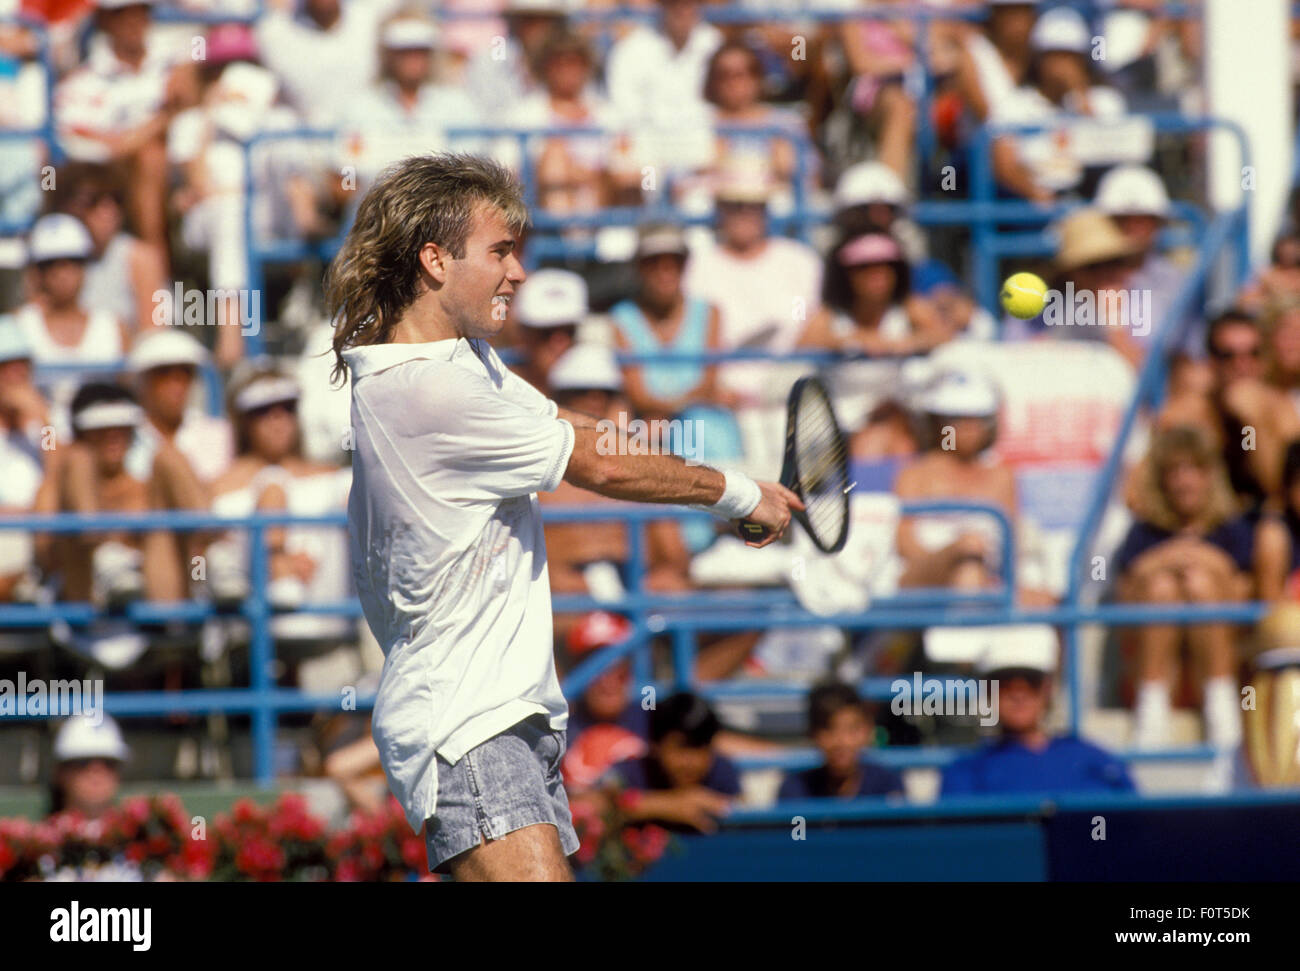 andre agassi in action against boris becker at the newsweek champions stock photo royalty free. Black Bedroom Furniture Sets. Home Design Ideas